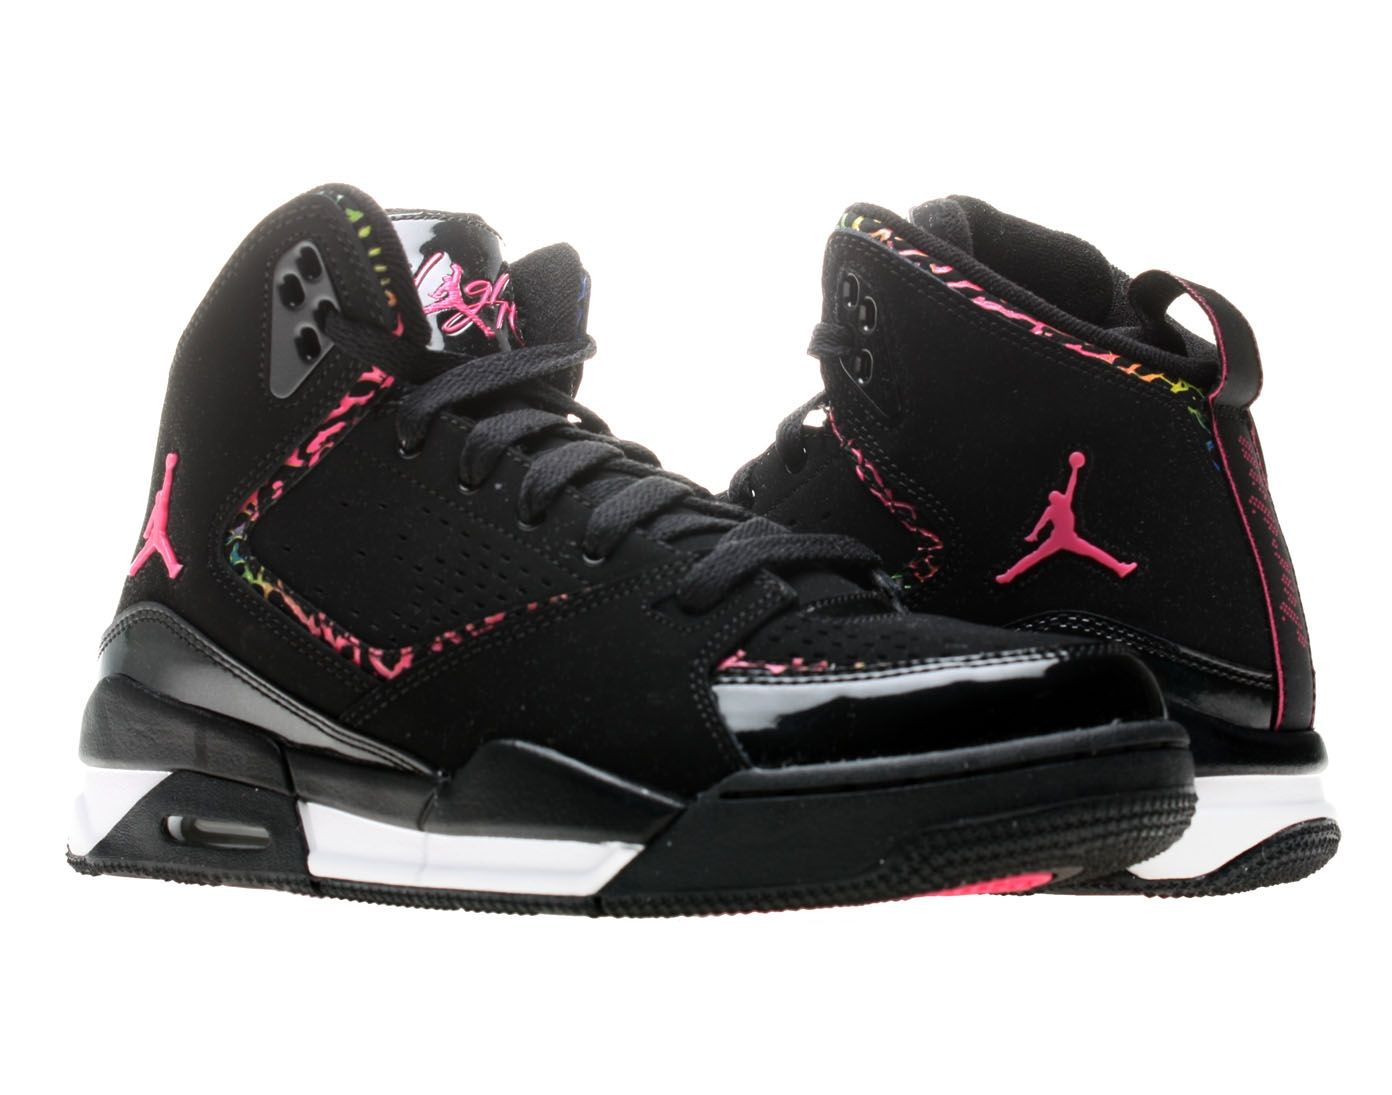 1b1eb319b6bd1c Nike Air Jordan SC-2 (GS) Girls Basketball Shoes  459856-009 ...